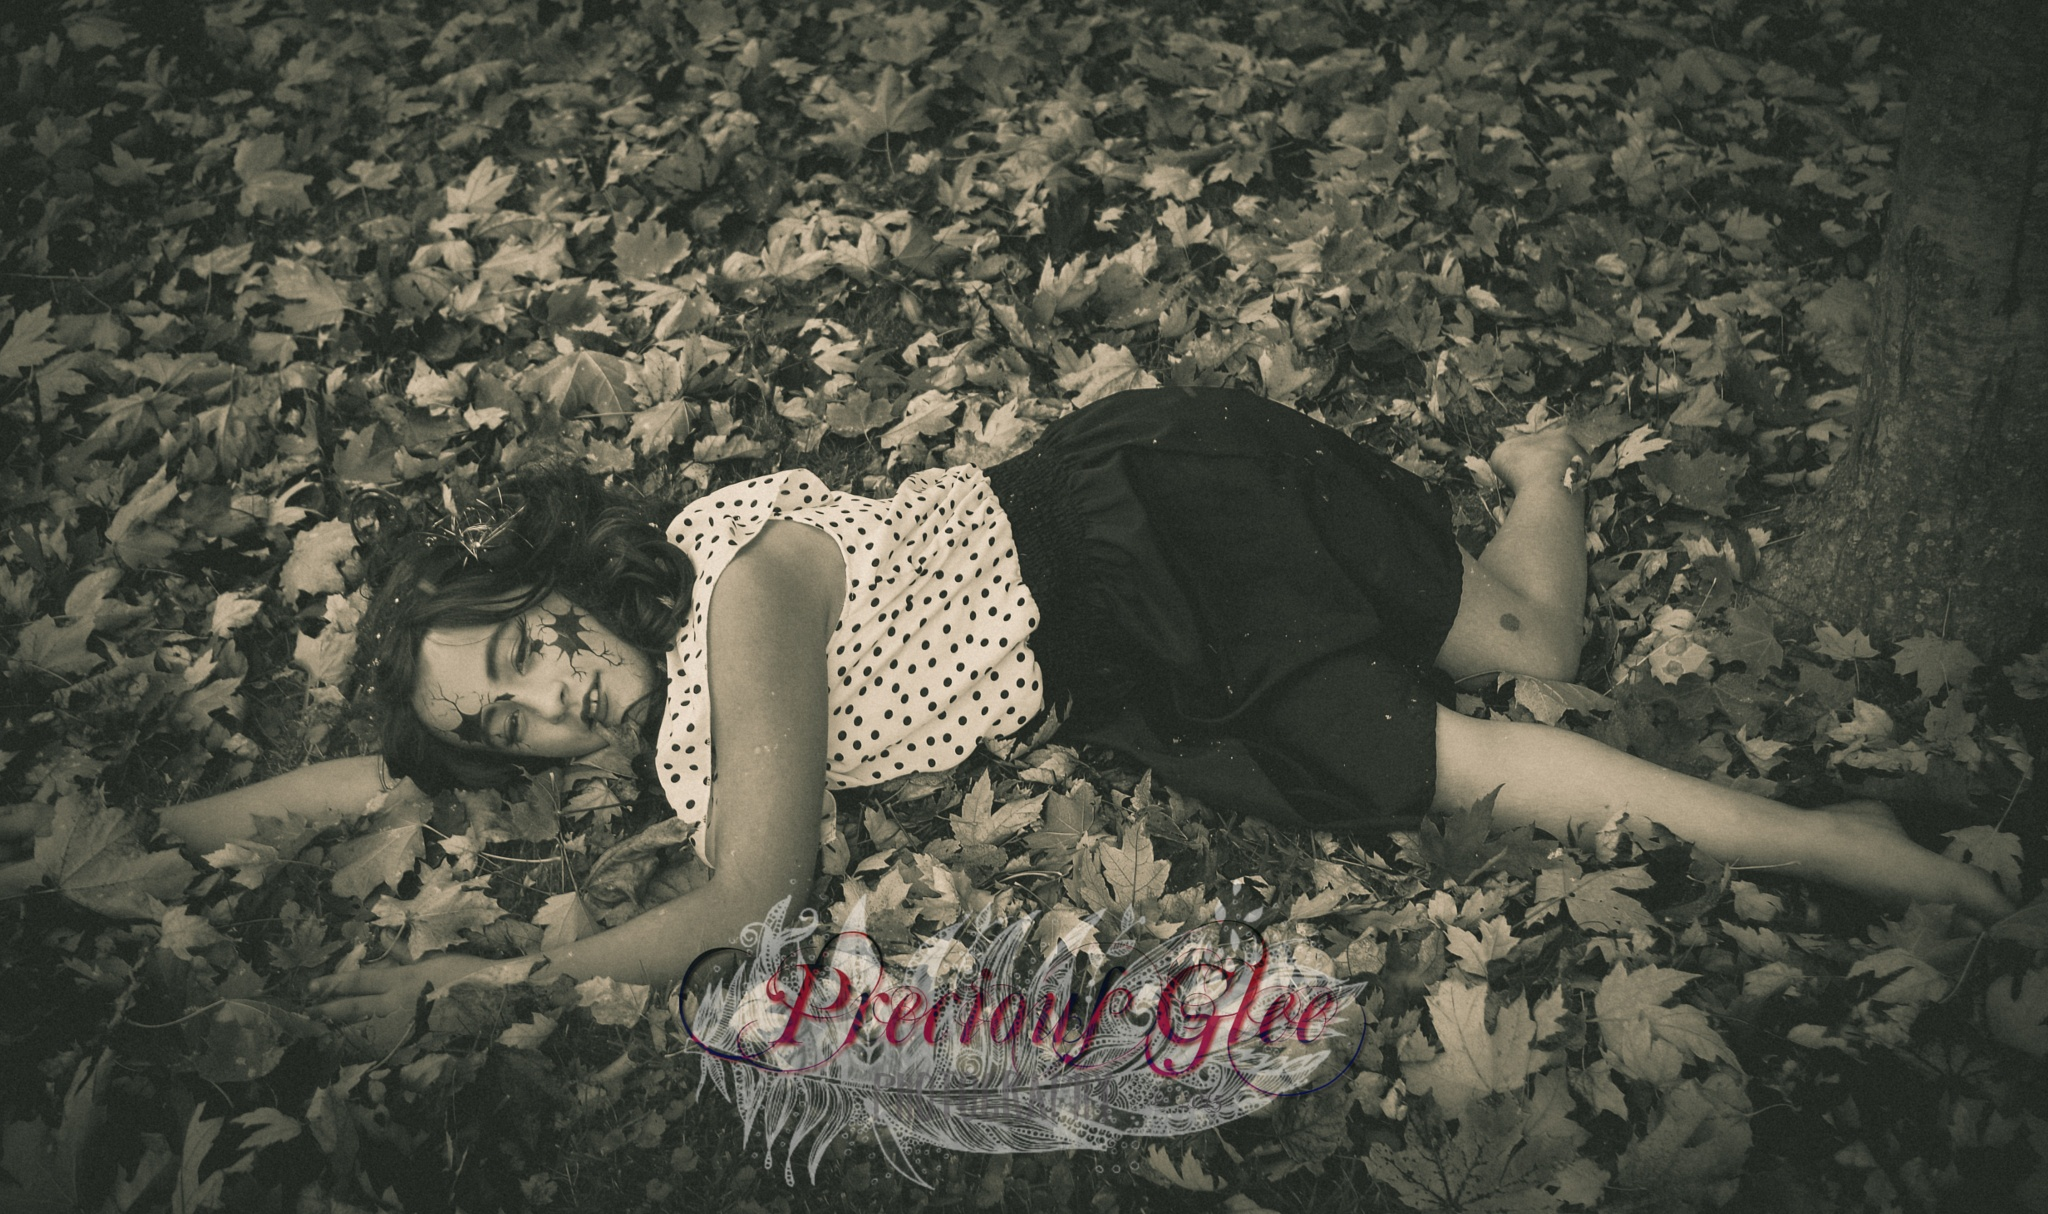 Forgotten by Precious Glee Photography